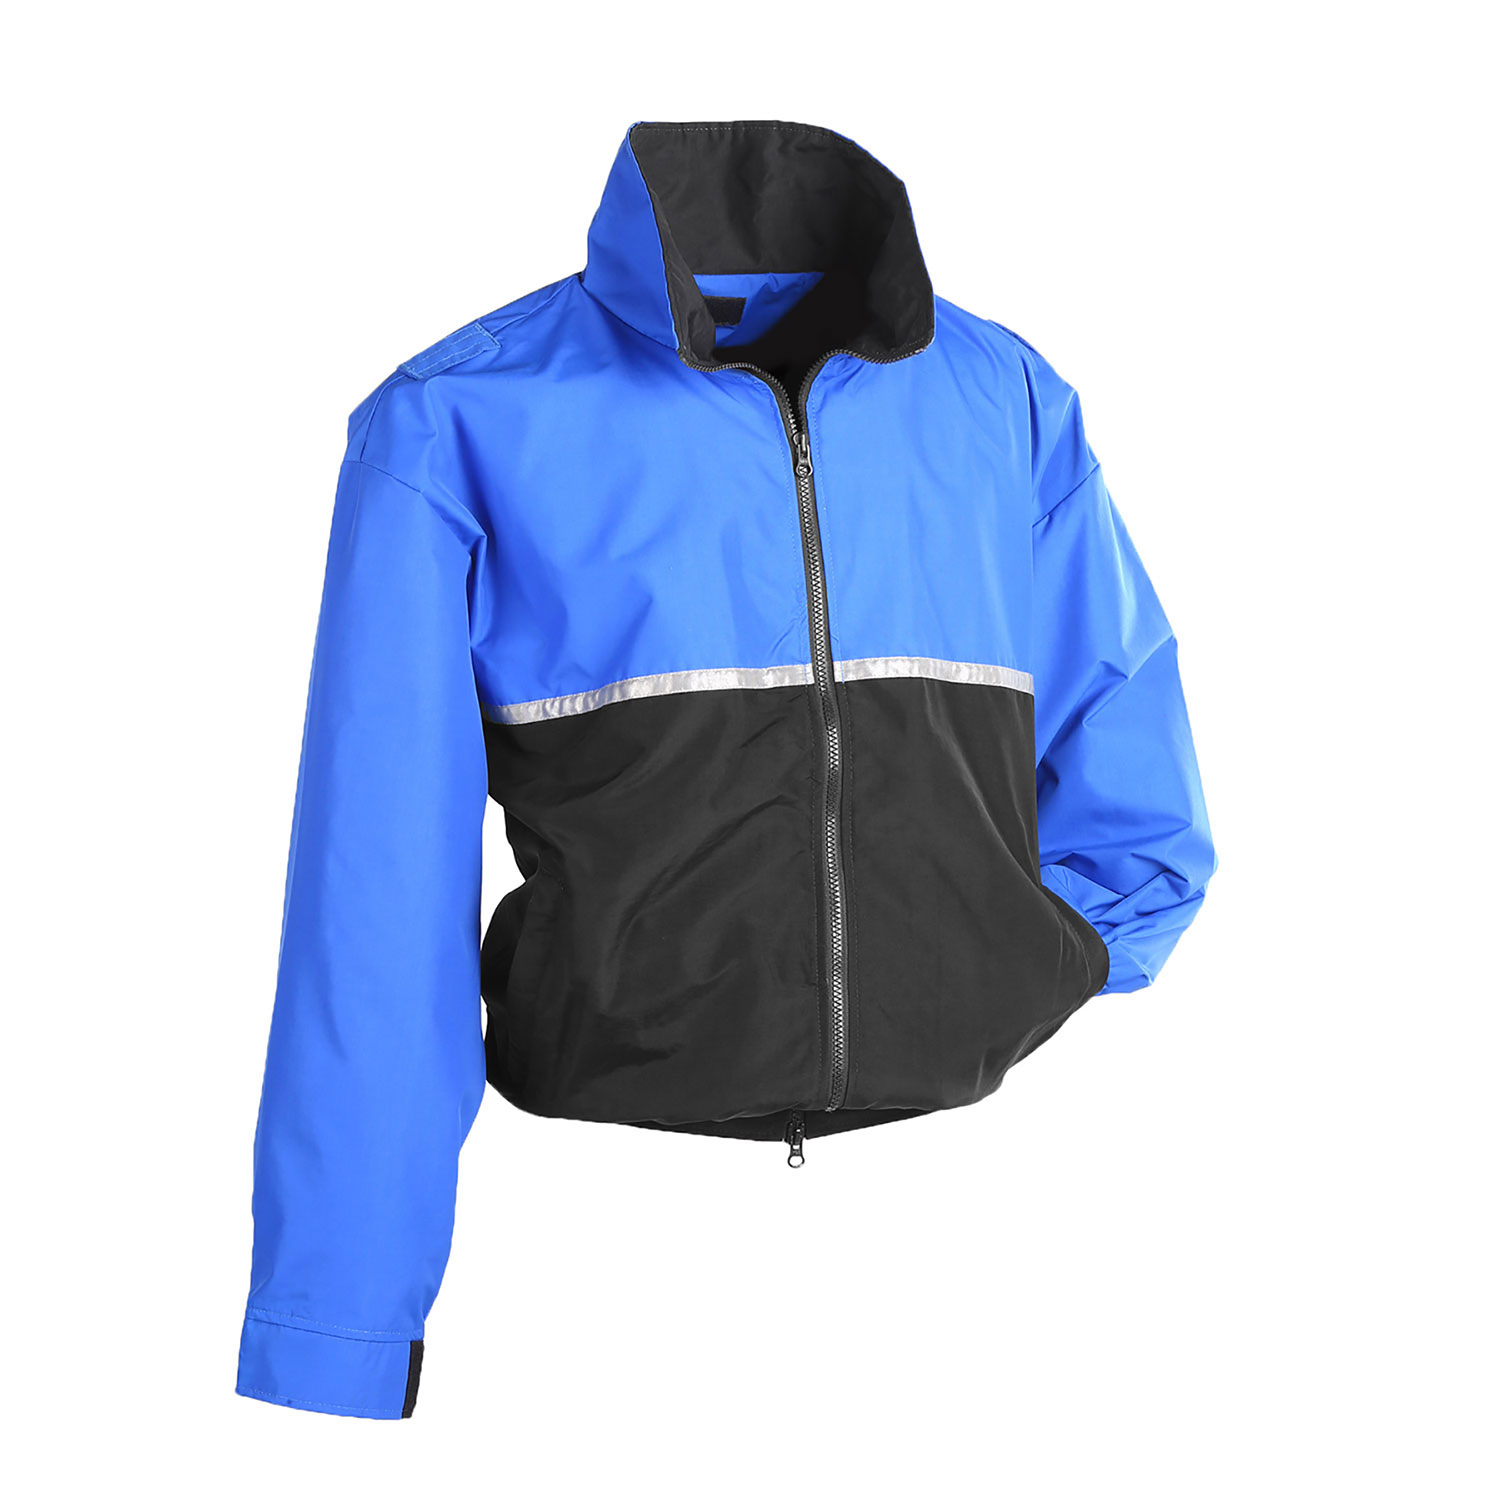 LawPro Lightweight Taslan Bike Patrol Jacket